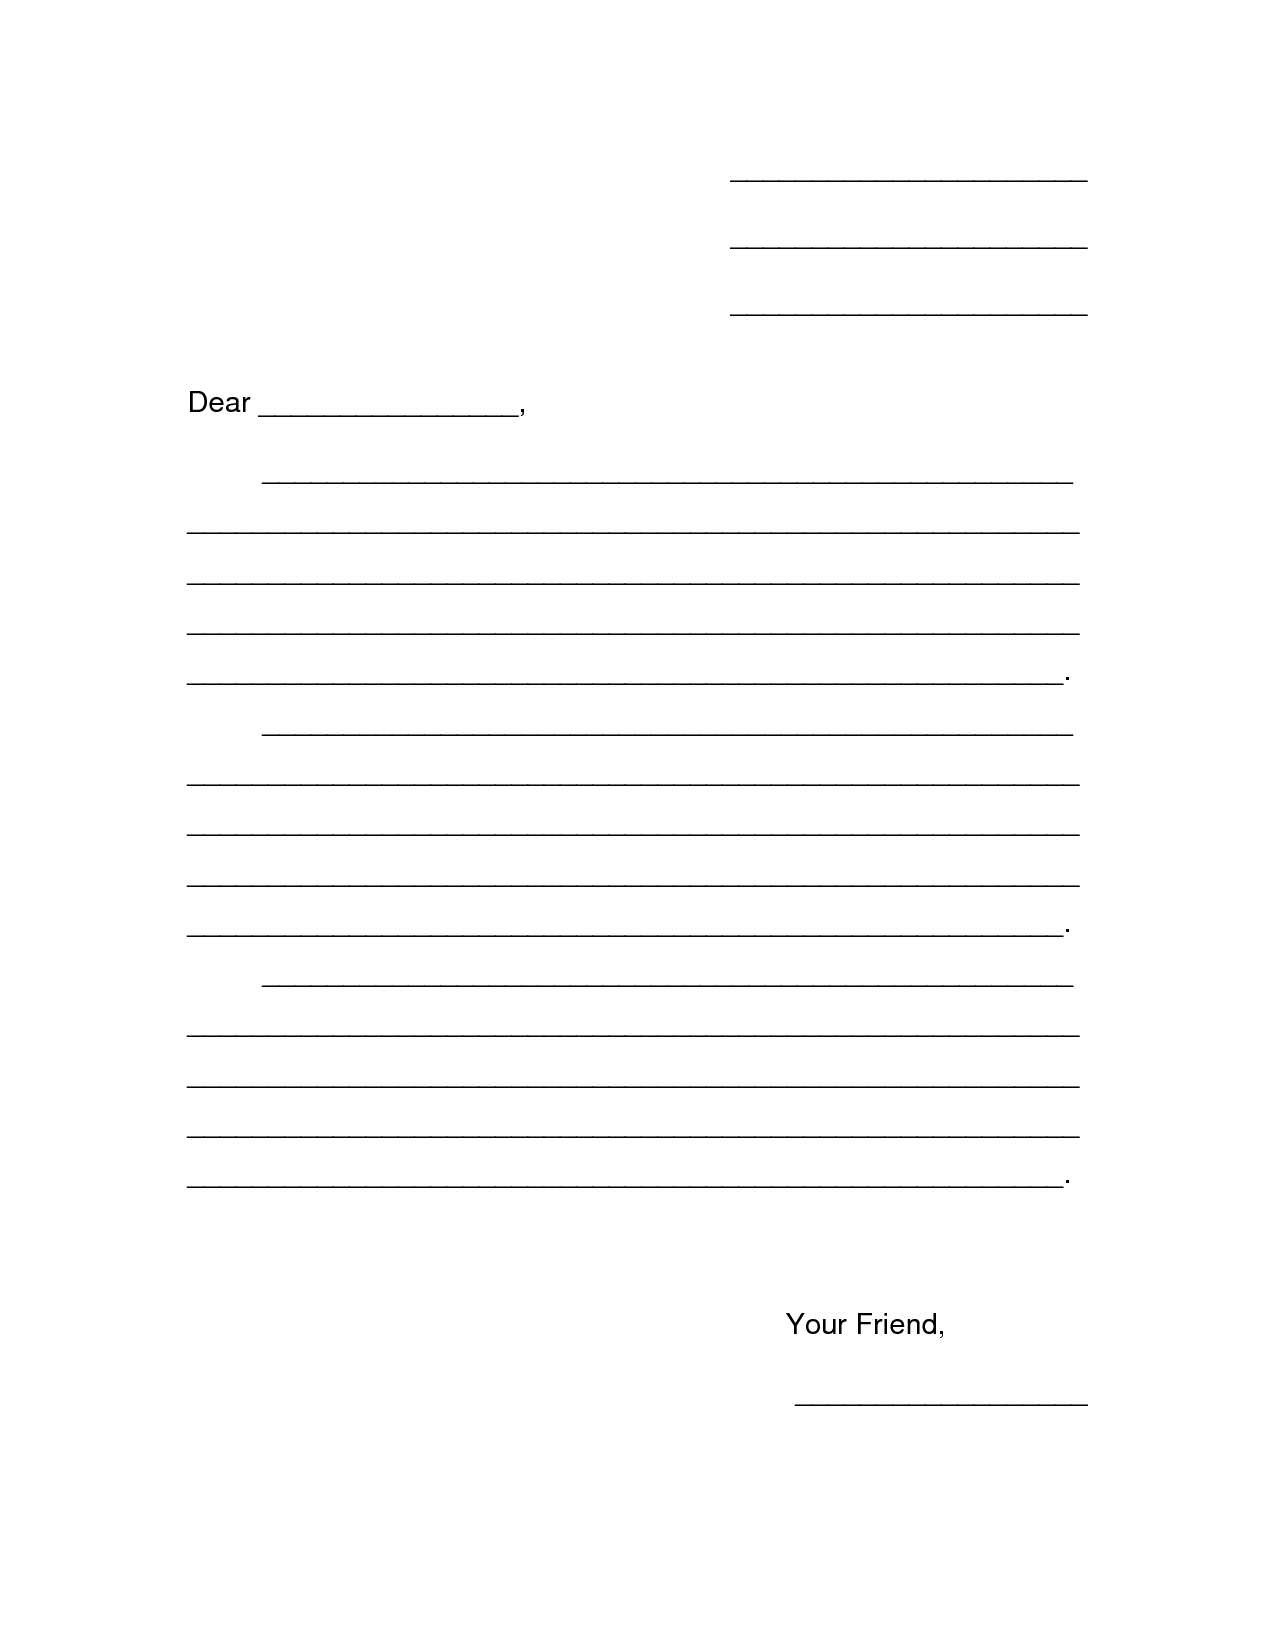 7 Images of A Friendly Letter- Writing Printable